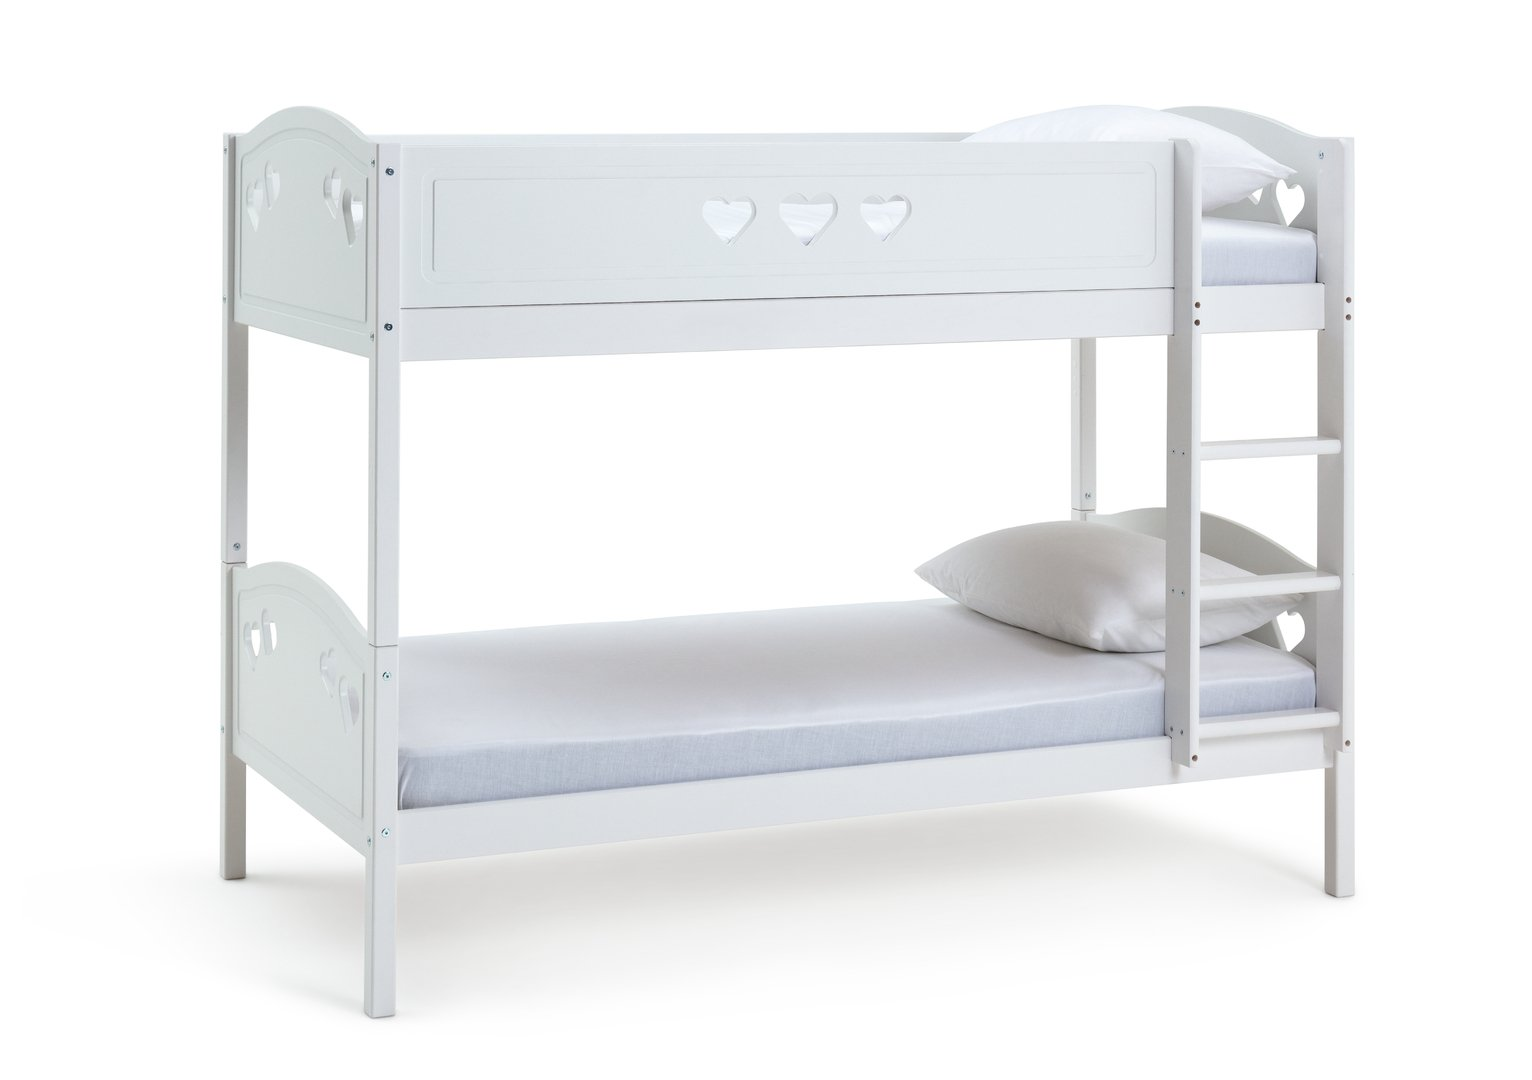 Argos Home Mia White Single Bunk Bed Frame